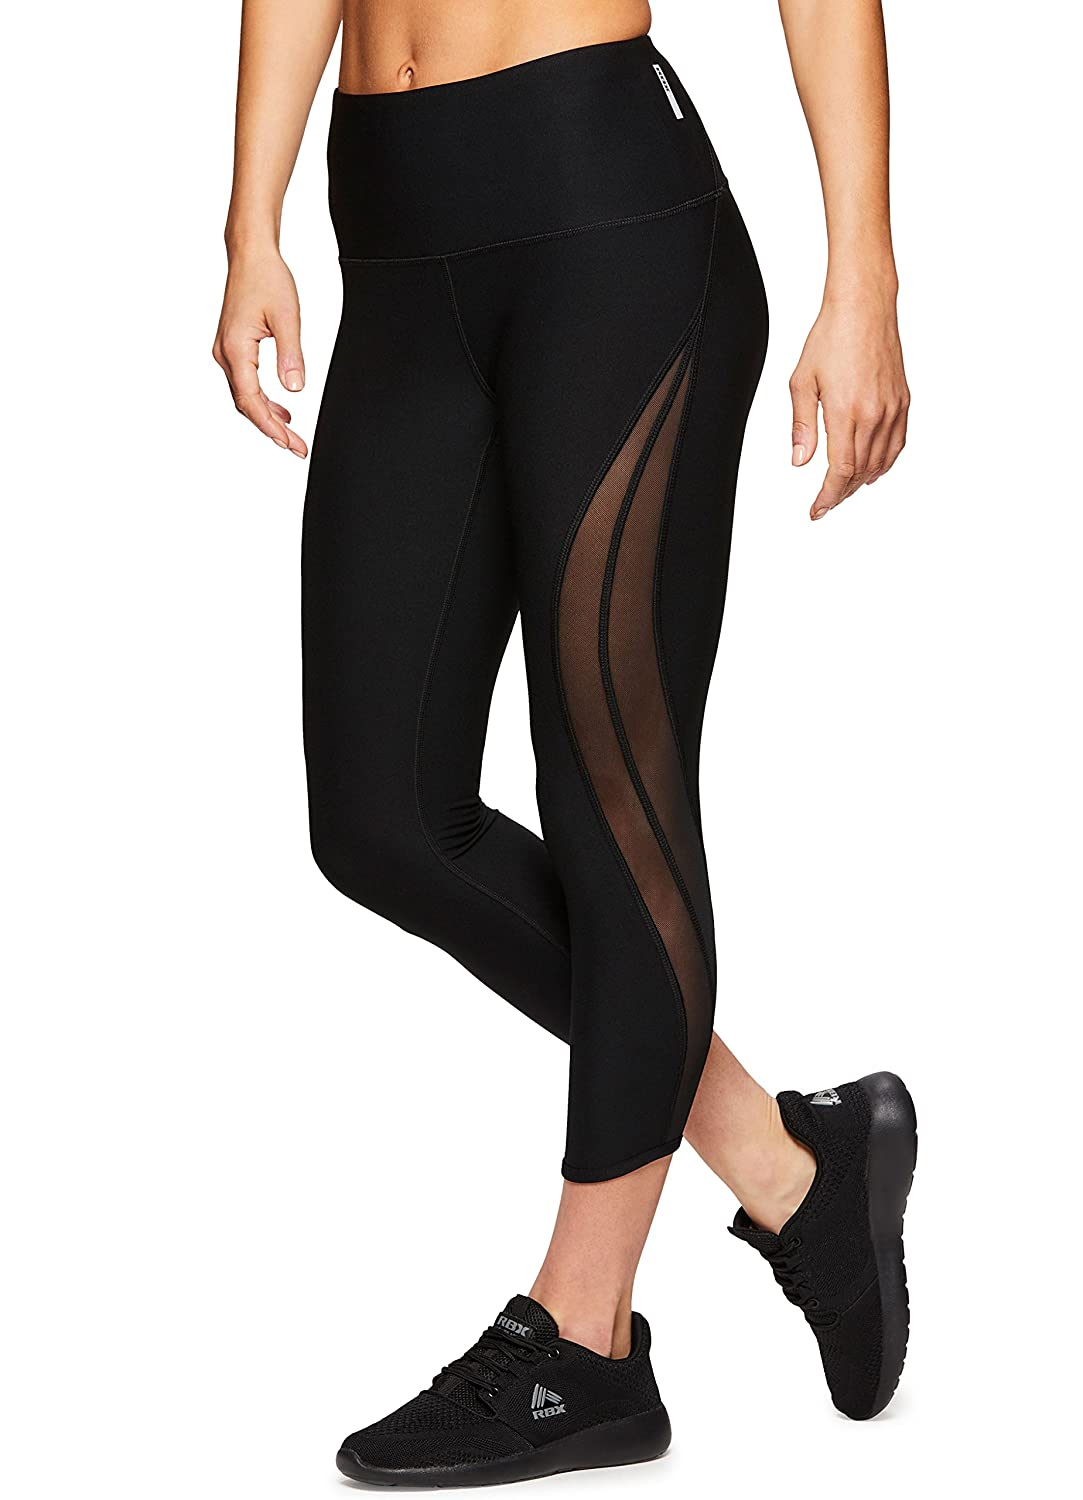 RBX Active Women's Gym Yoga Capri Length Workout Leggings with Mesh ACR6-21-MSHXSTRP